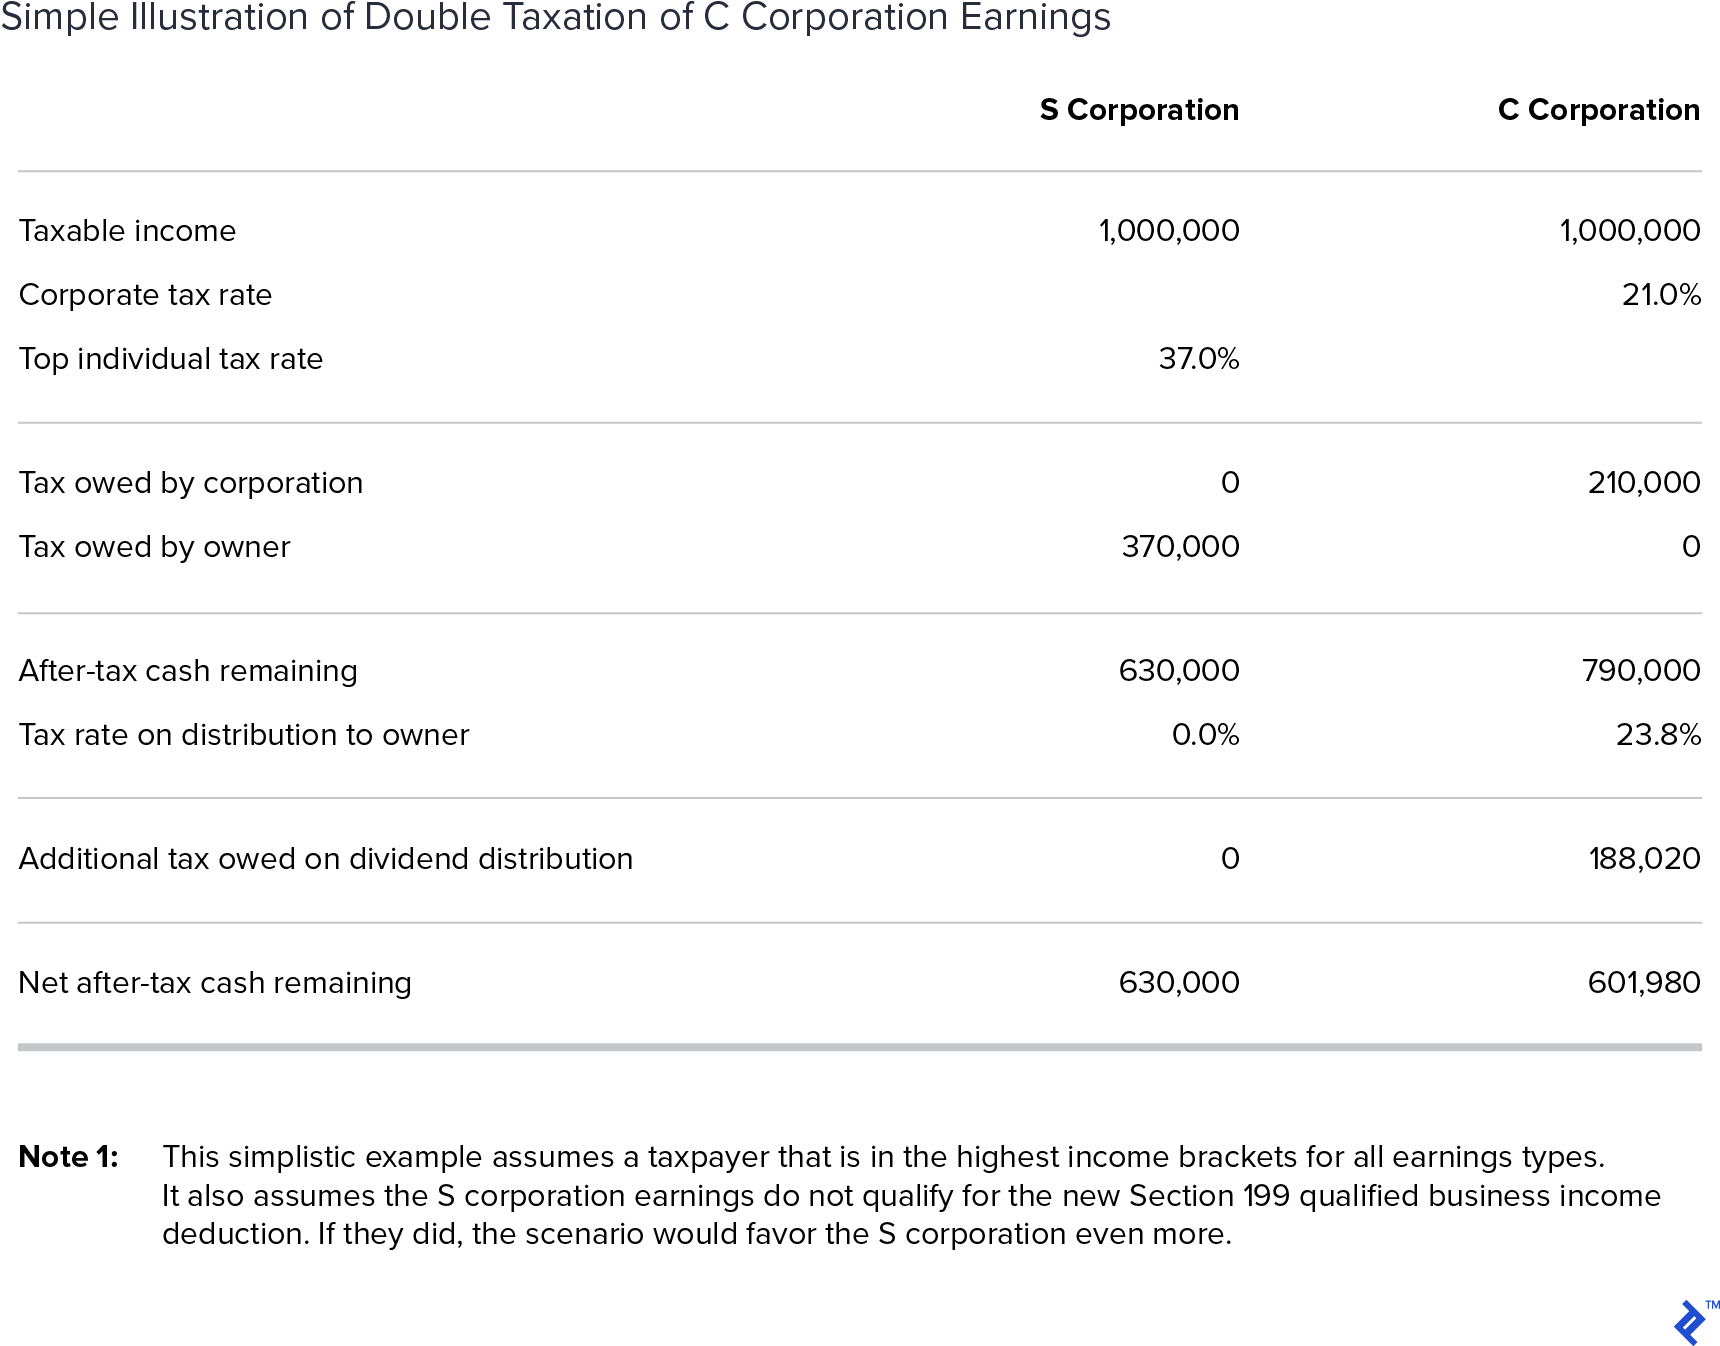 Double Taxation of C Corporation Earnings